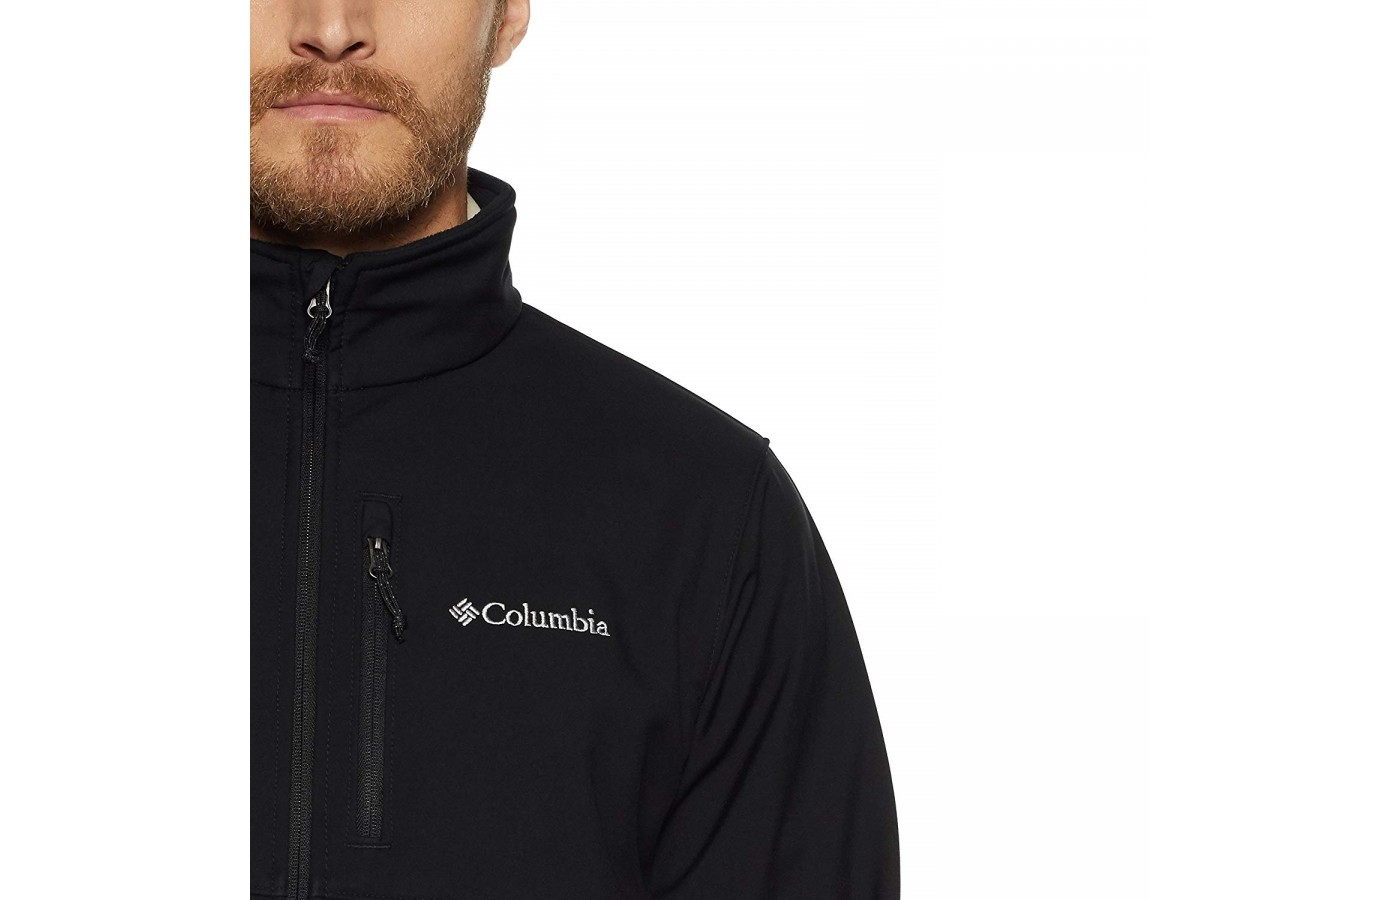 The Columbia Ascender also offers a designated cell phone pocket to keep your device protected and in reach.